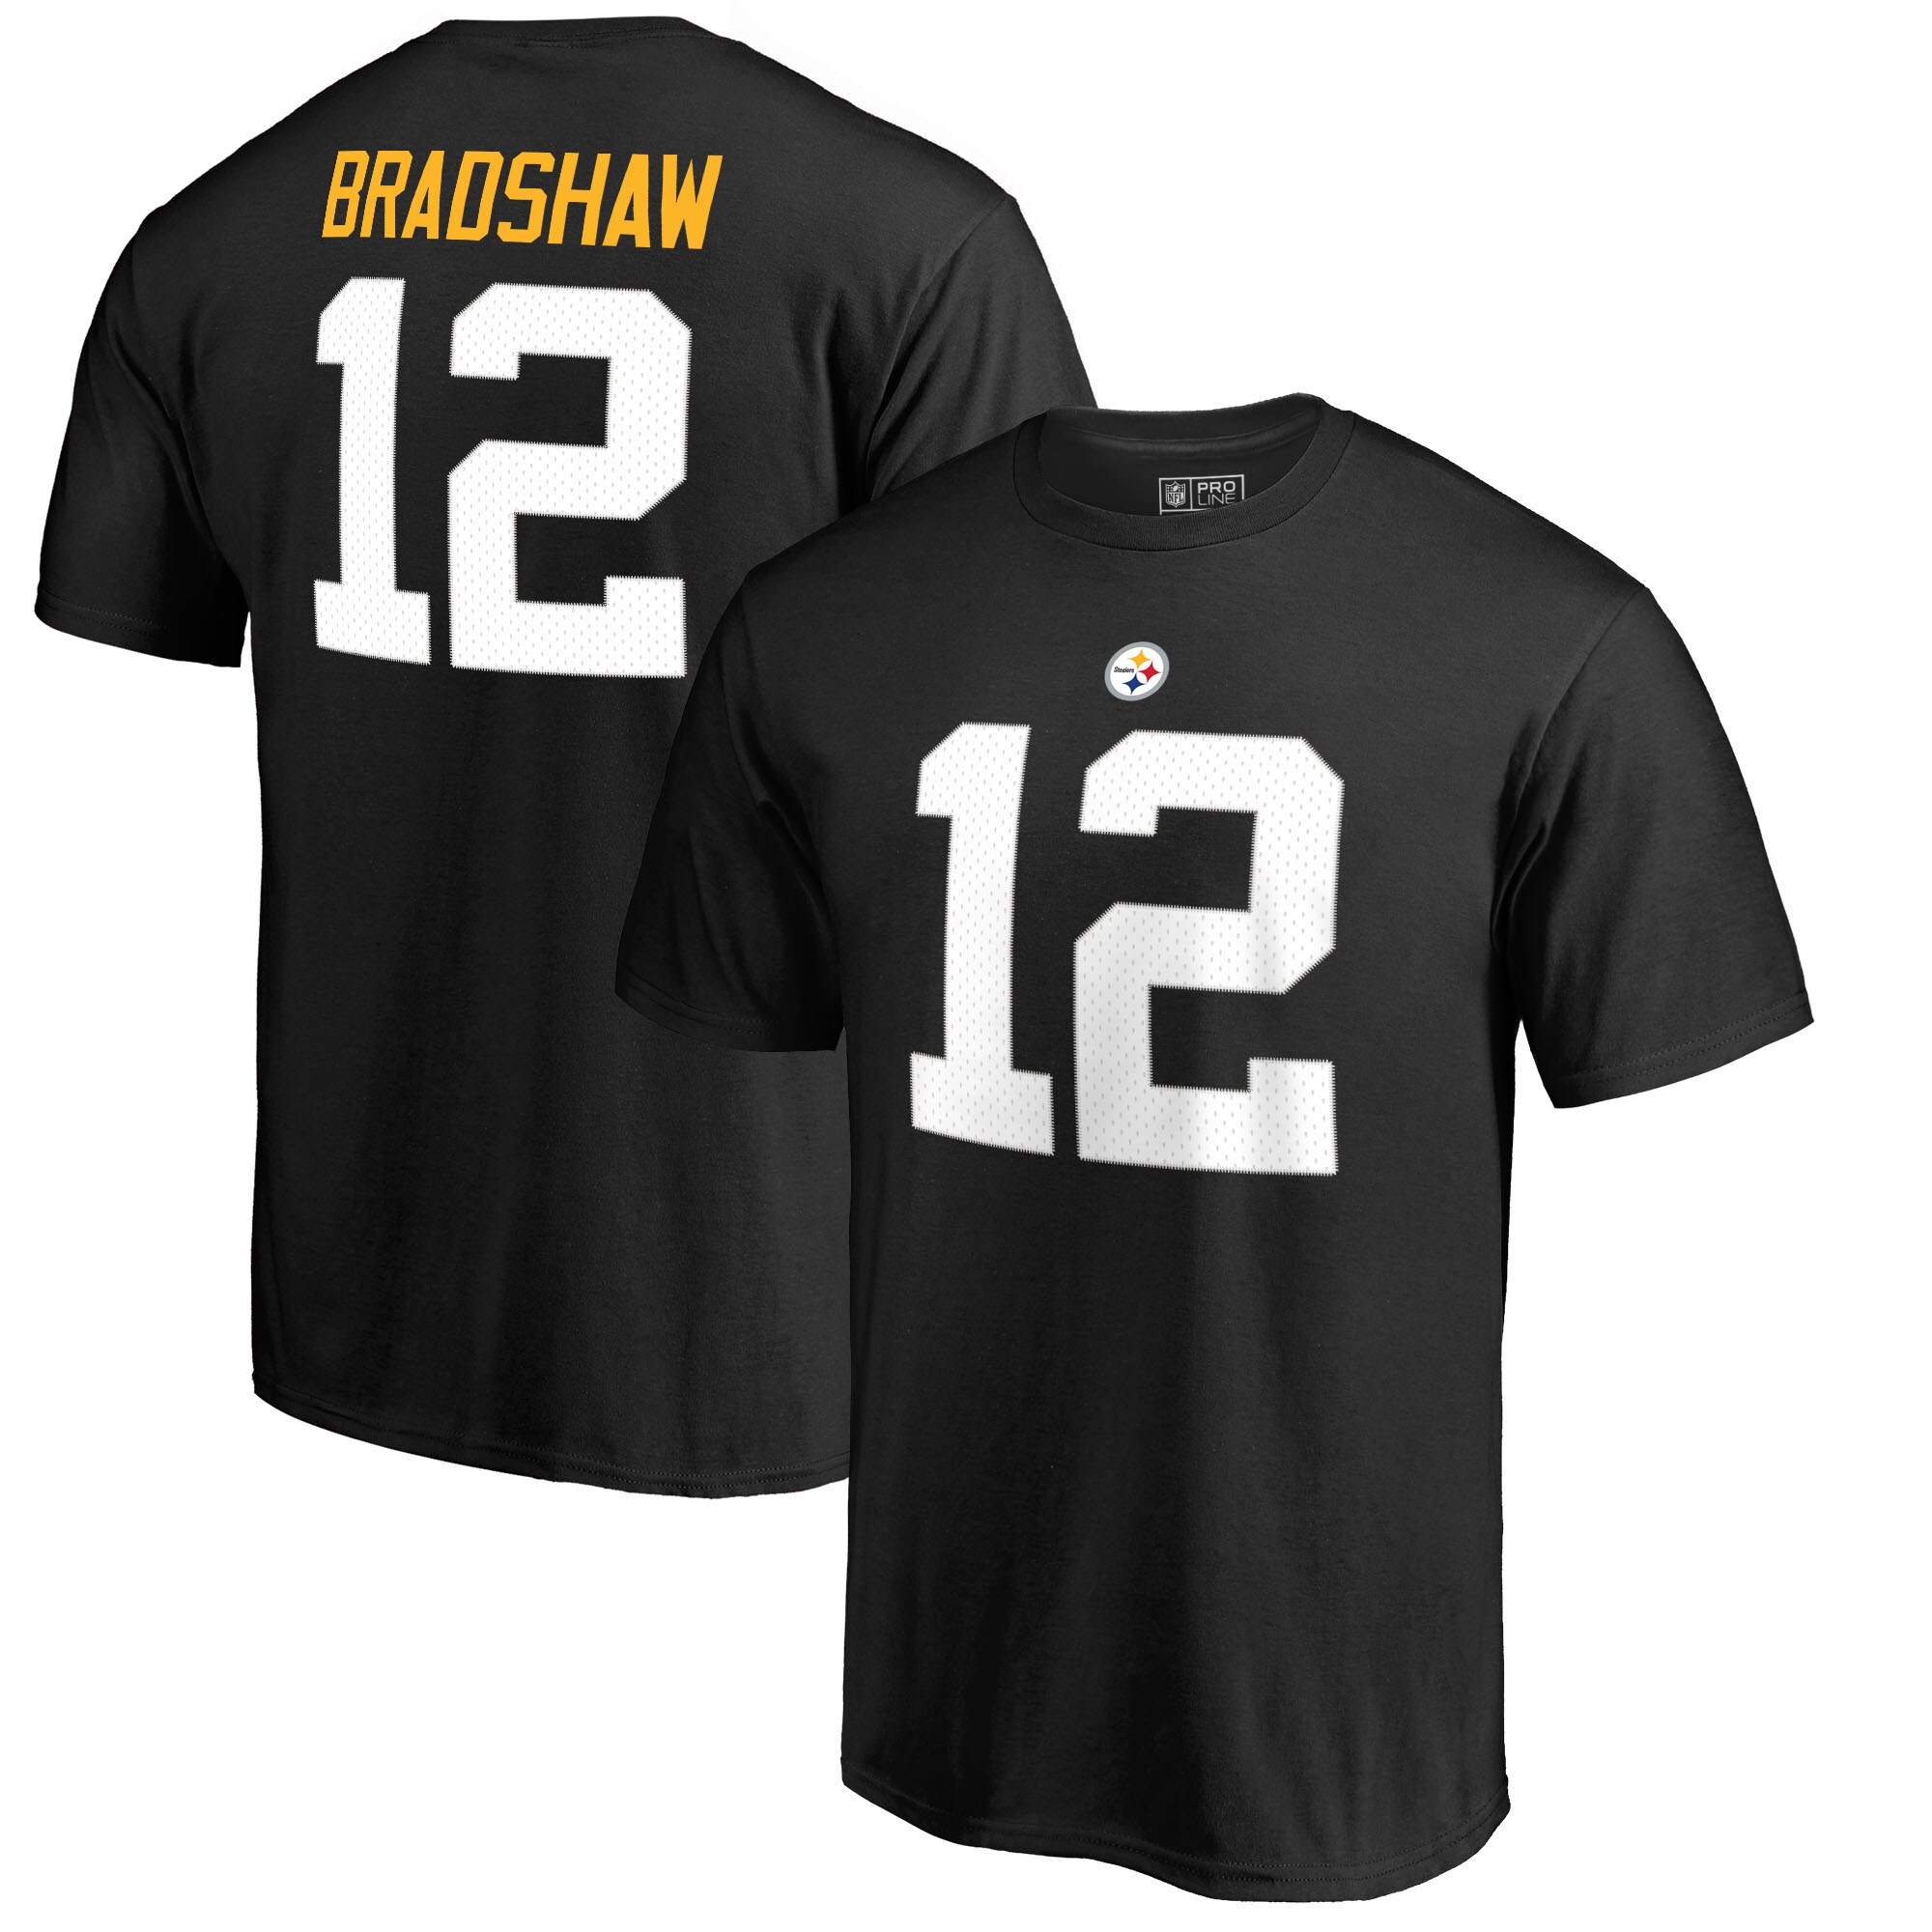 Terry Bradshaw Pittsburgh Steelers NFL Pro Line by Fanatics Branded Retired Player Authentic Stack Name & Number T-Shirt - Black